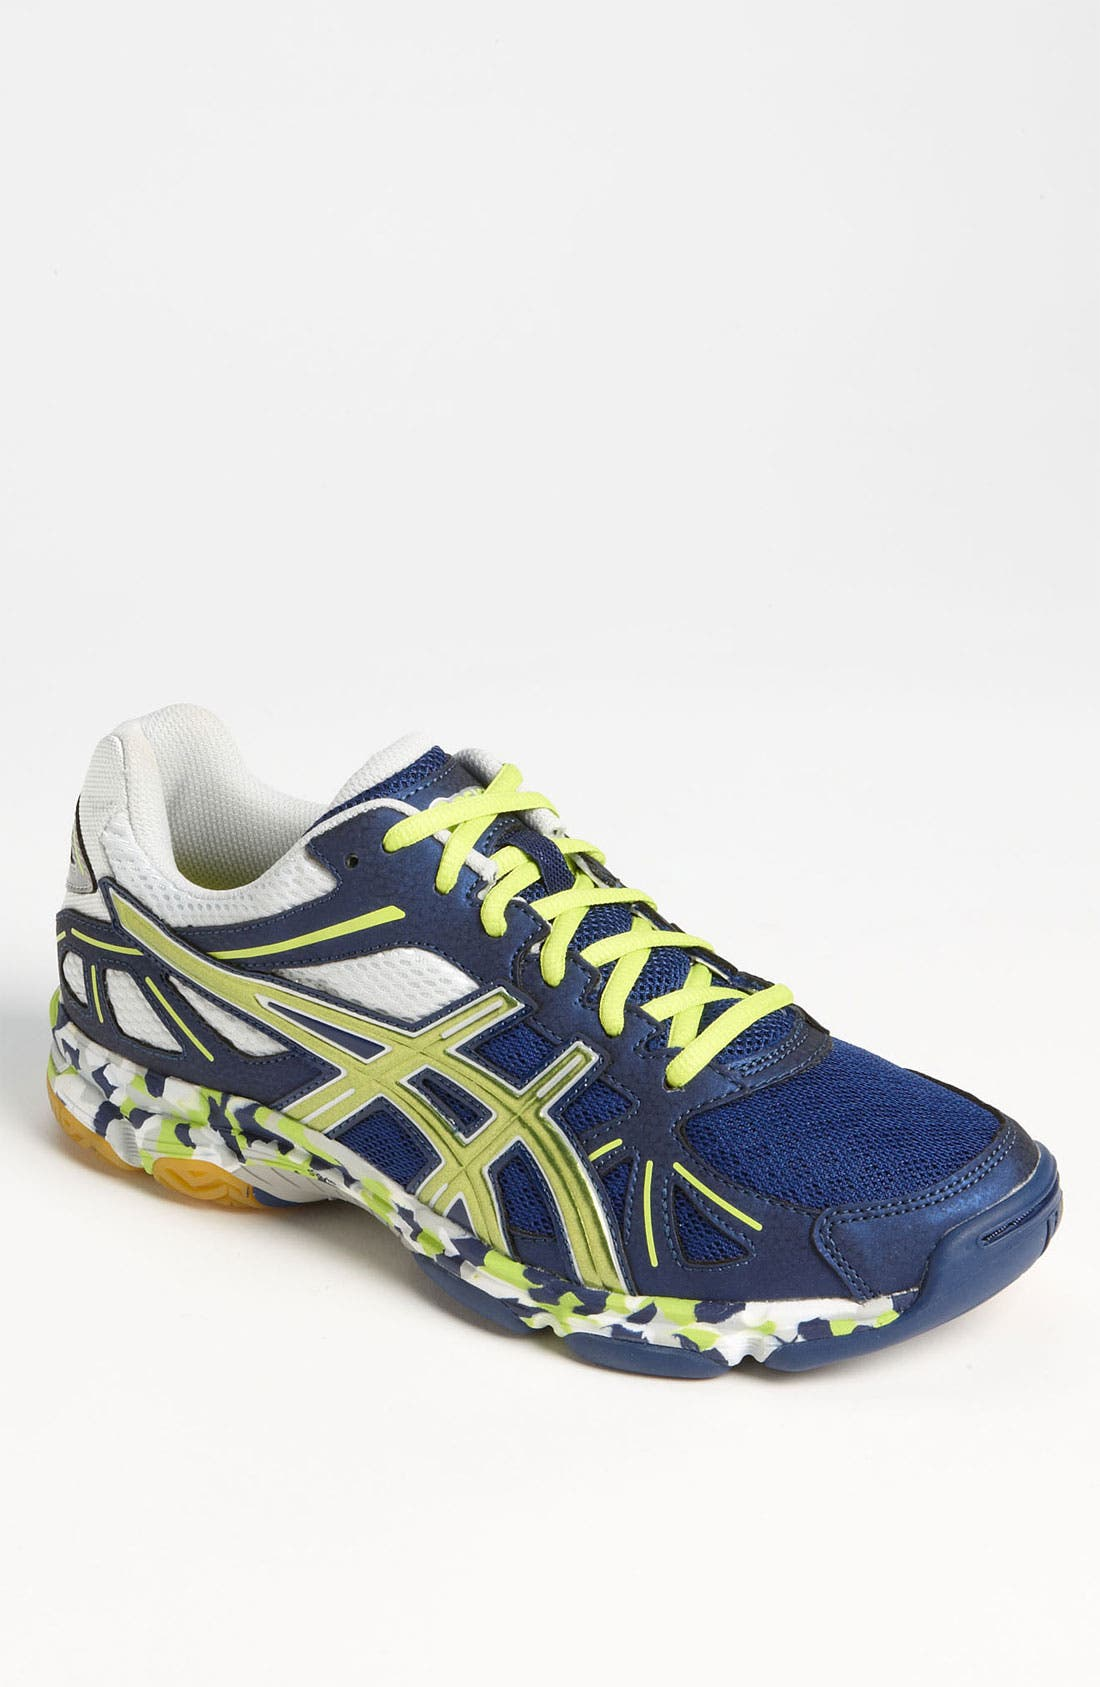 Alternate Image 1 Selected - ASICS® 'GEL-Flashpoint' Volleyball Shoe (Men) (Online Only)